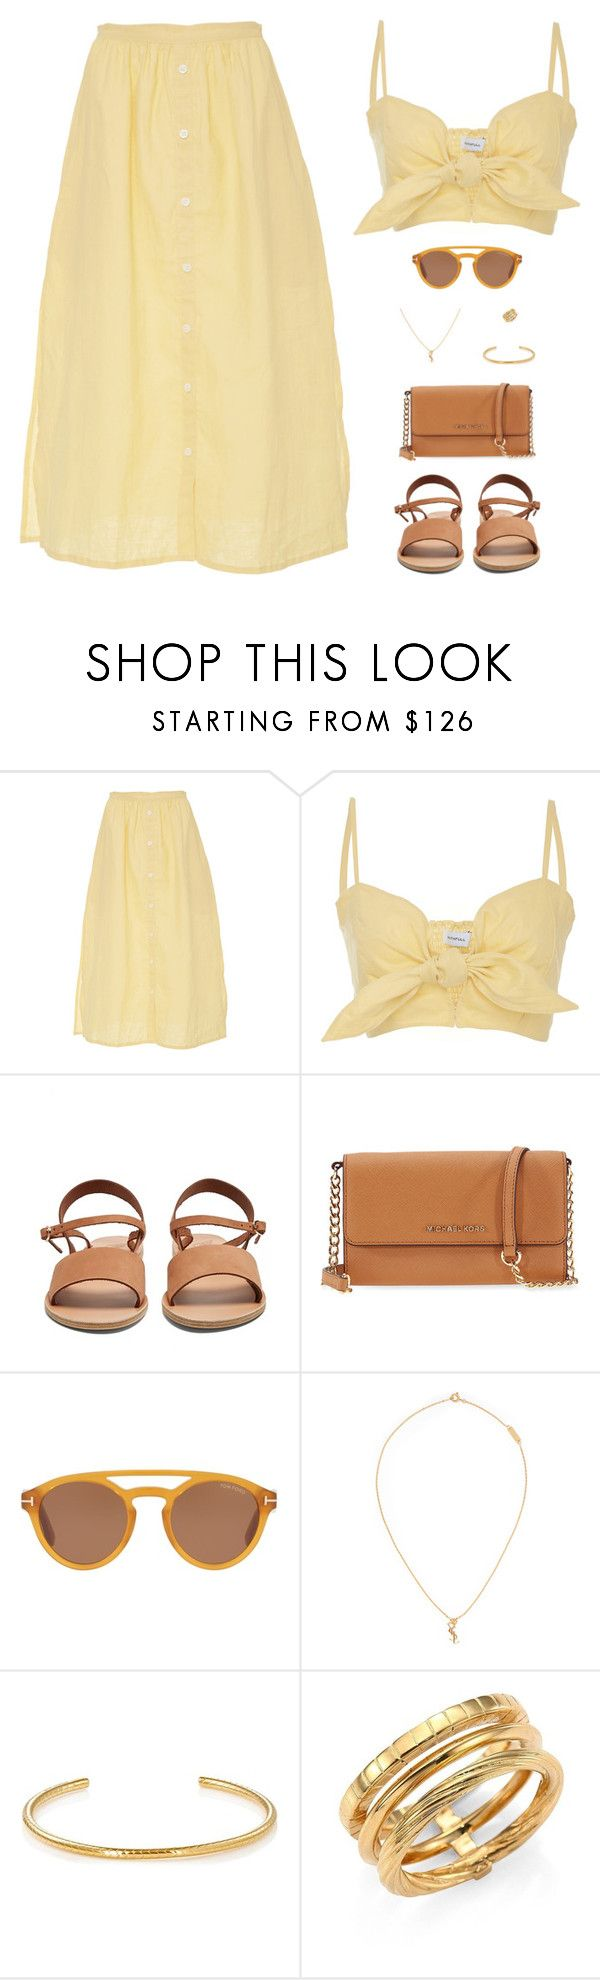 """""""Sin título #4981"""" by mdmsb on Polyvore featuring moda, Faithfull, Ancient Greek Sandals, Michael Kors, Tom Ford y Yves Saint Laurent"""